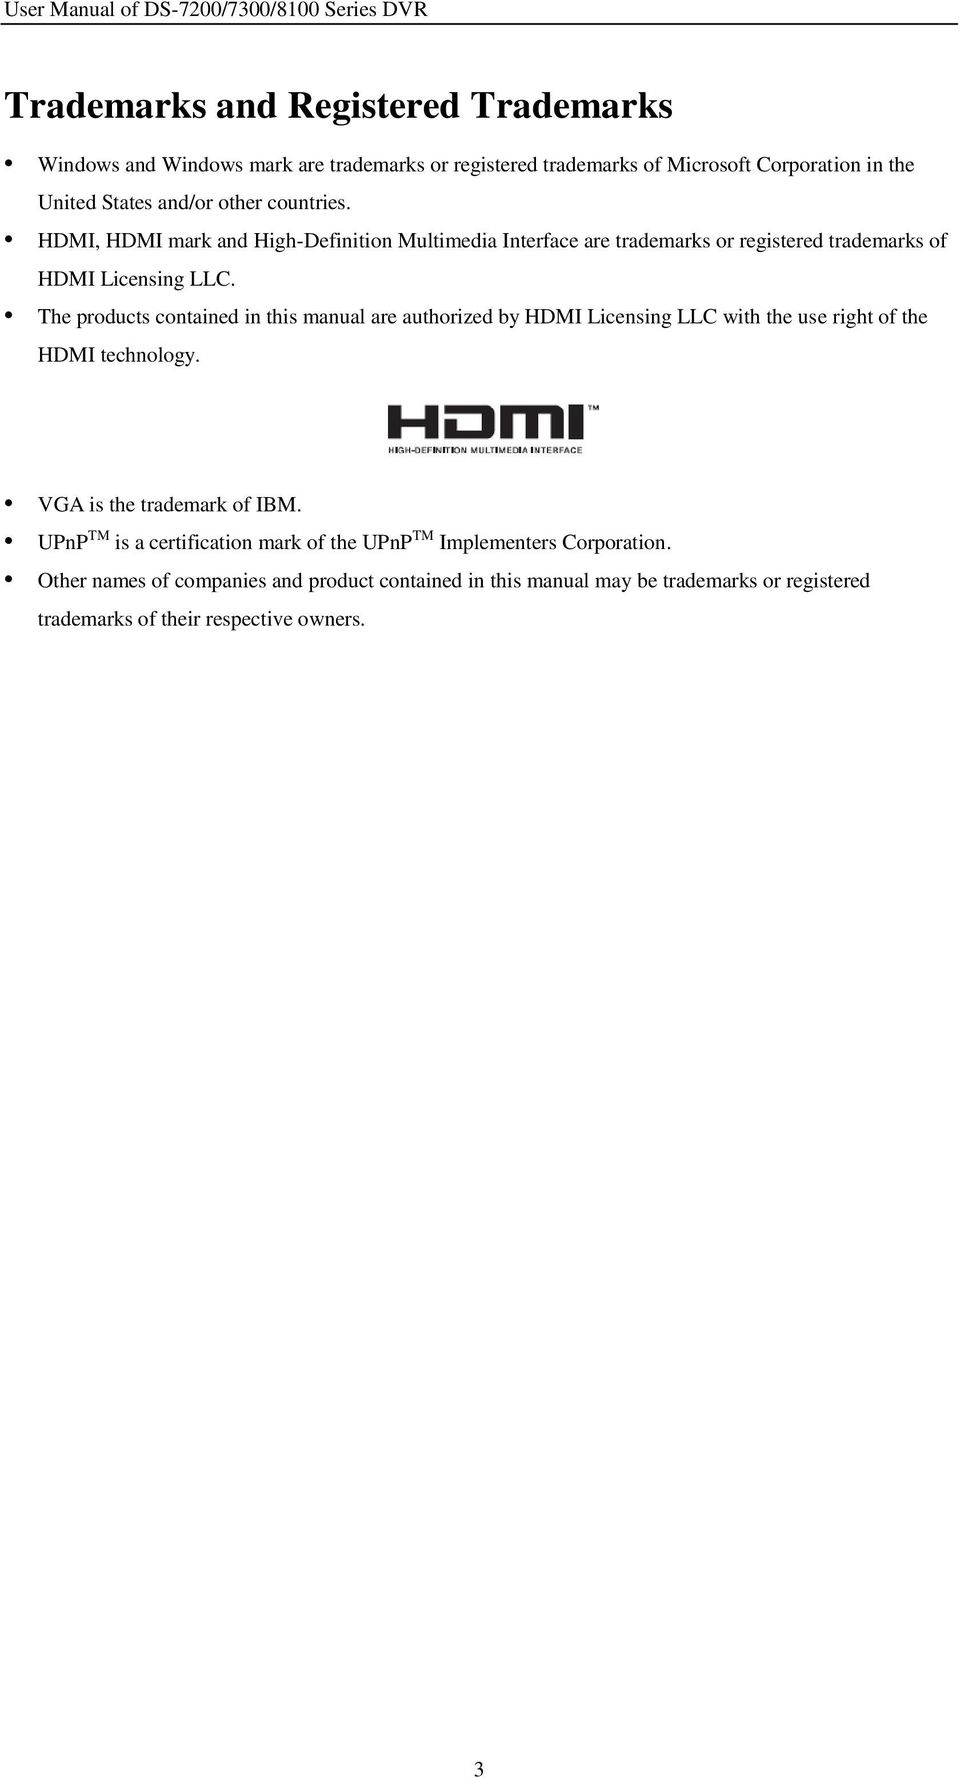 The products contained in this manual are authorized by HDMI Licensing LLC with the use right of the HDMI technology. VGA is the trademark of IBM.